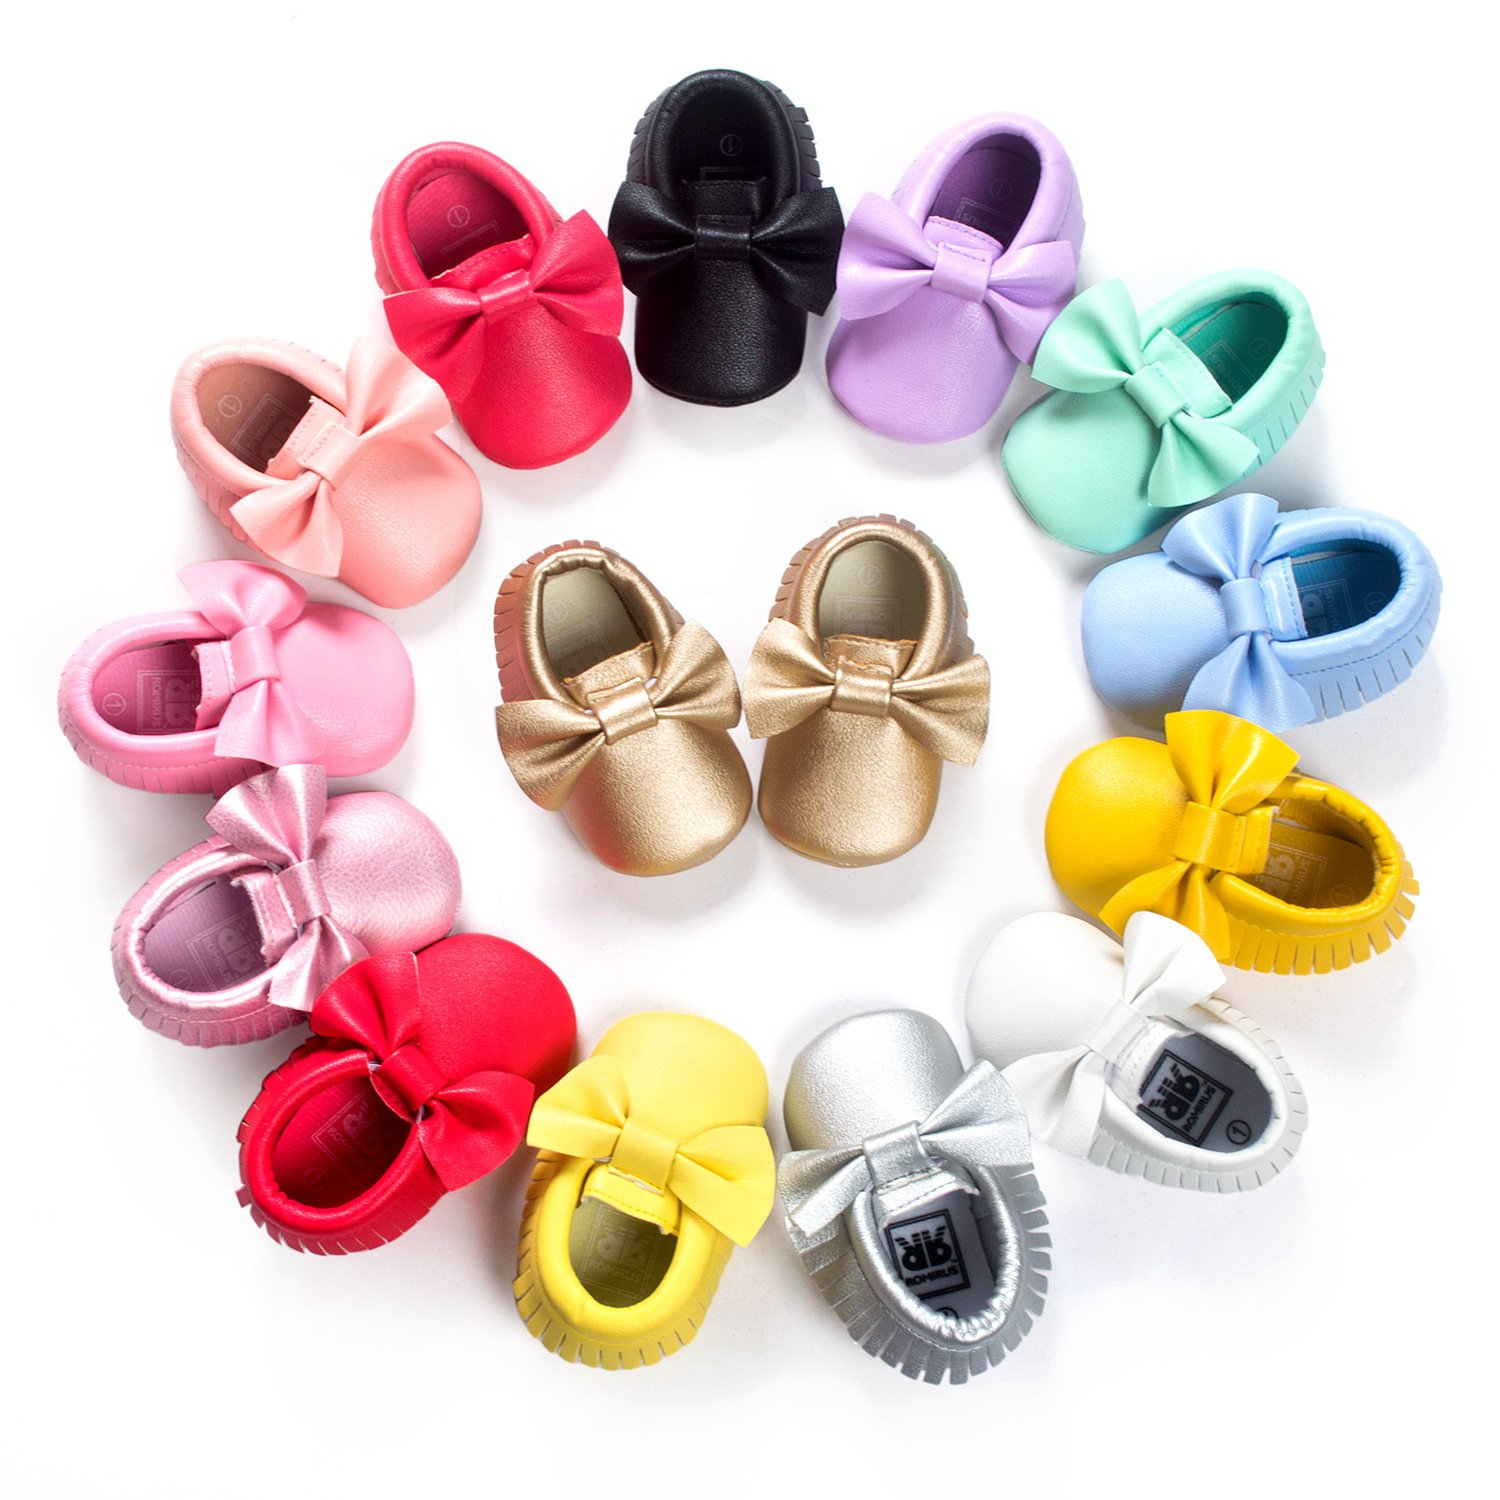 C&H Baby boy girl soft cute tassel bow tassels baby cot shoes baby shoes (11cm(0-6months), 5107 golden) by C&H (Image #1)